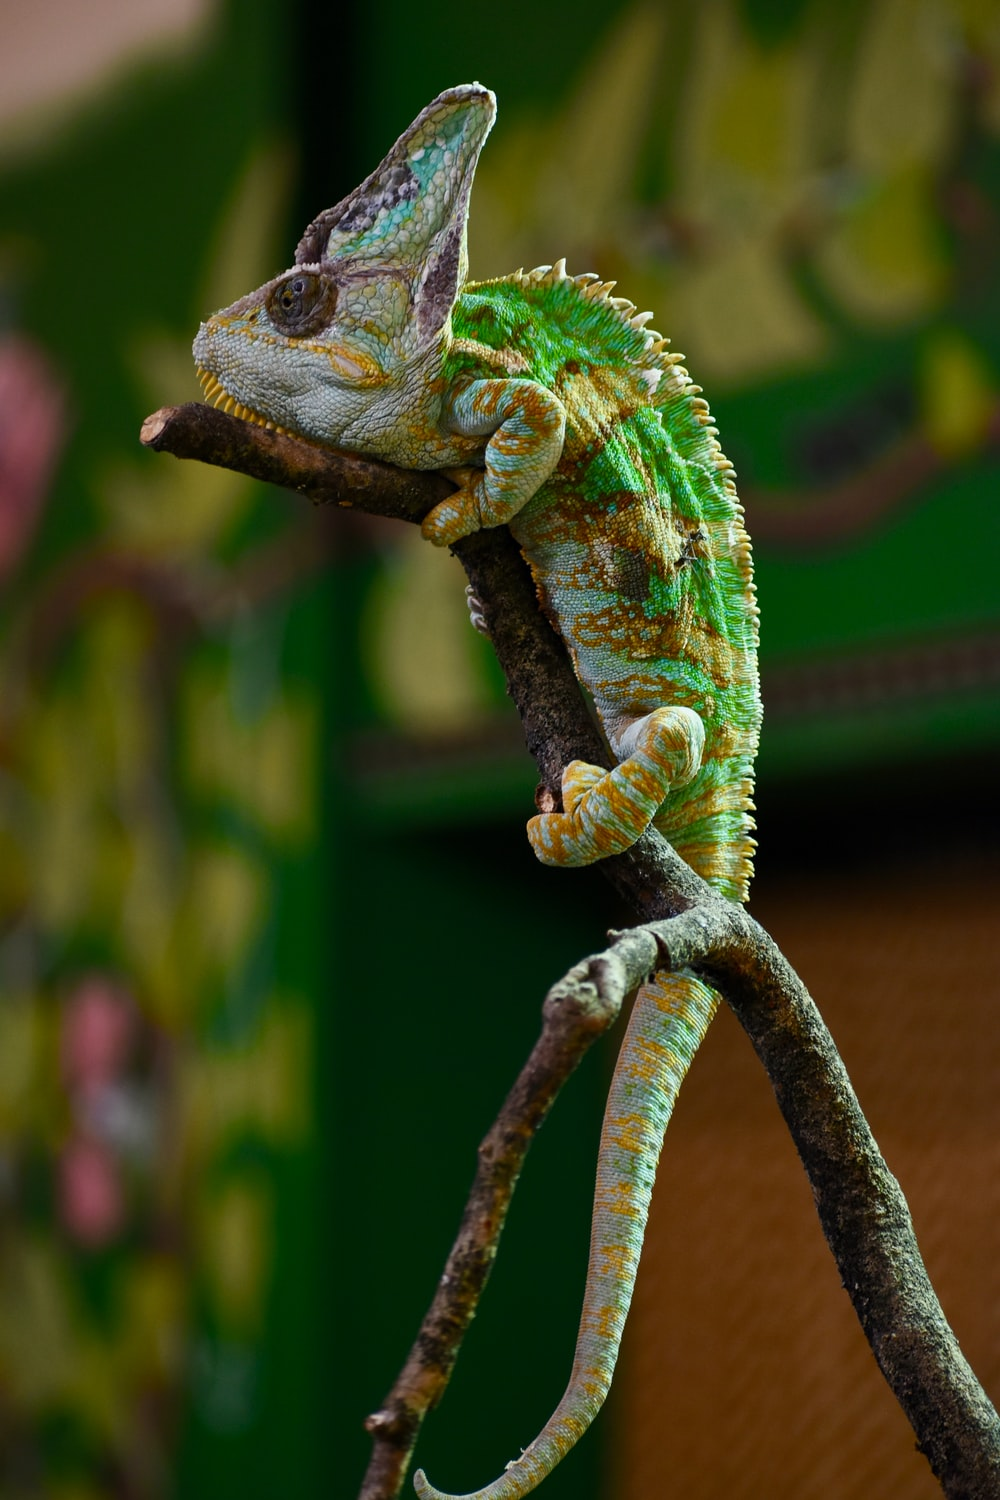 green and gray chameleon on tree branch